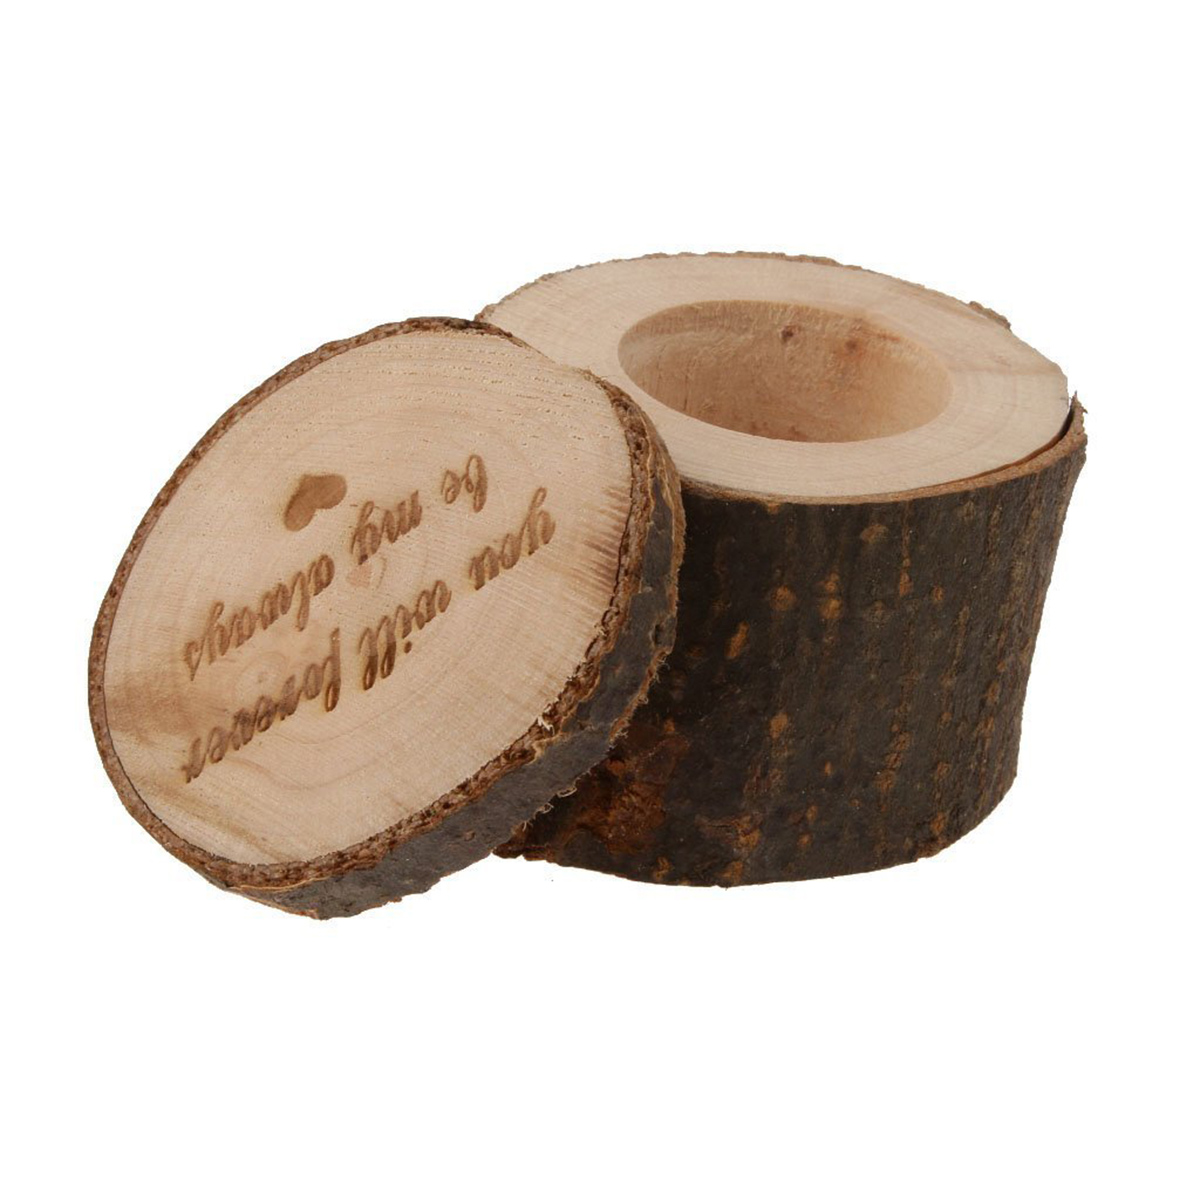 Wedding Vintage Wood Ring Box Rustic Decor Wooden Ring Holder For Engagement Anniversery Event ...